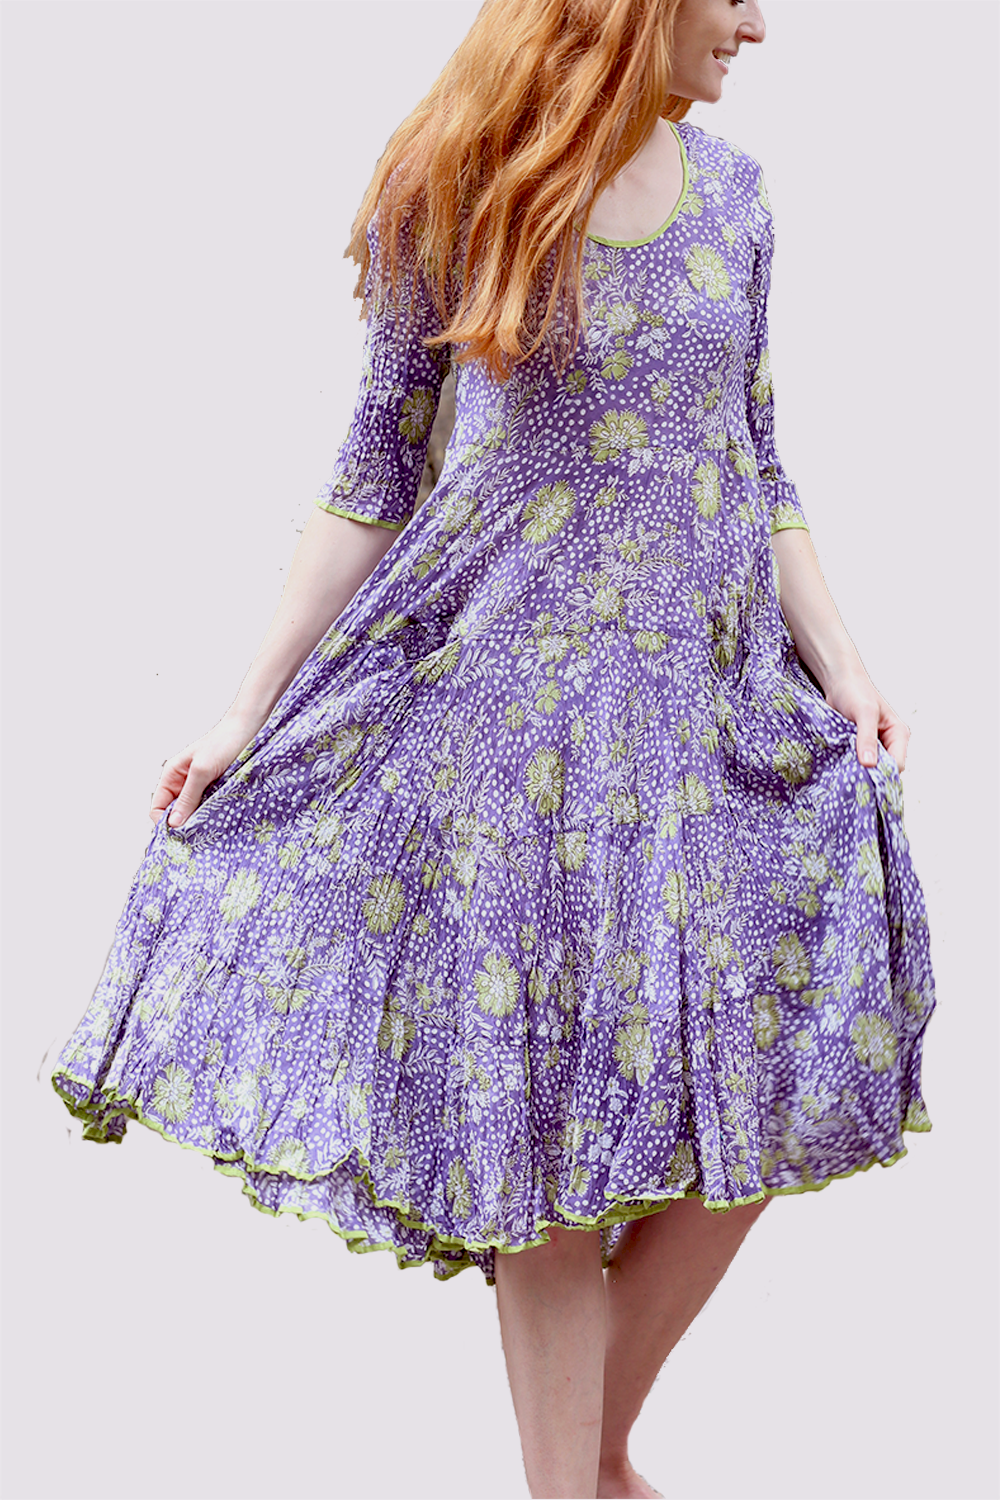 Nila Rubia Ruby Sun Dress in Lilac and Lime